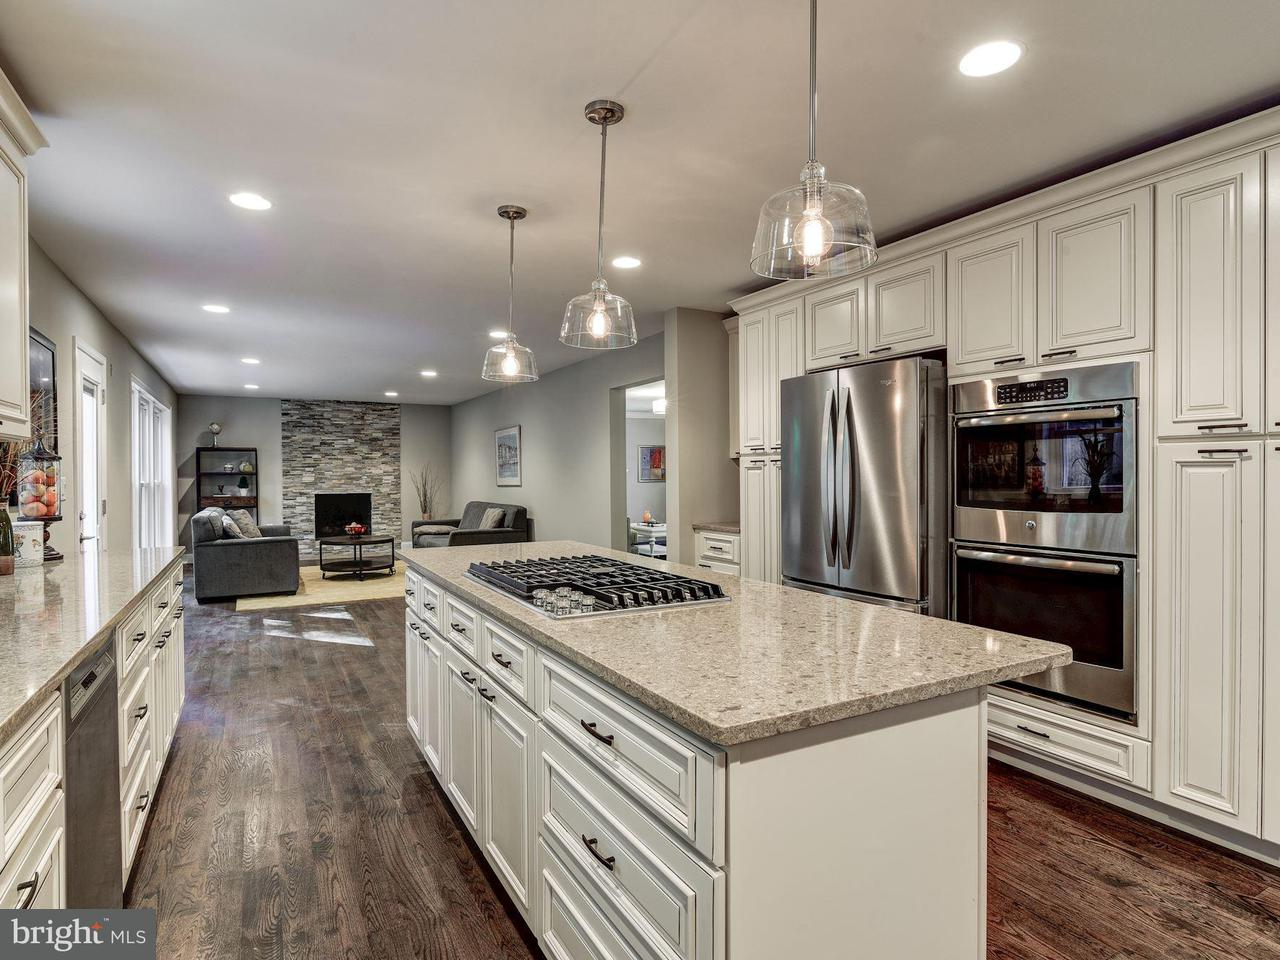 Single Family Home for Sale at 7713 HACKAMORE Drive 7713 HACKAMORE Drive Rockville, Maryland 20854 United States